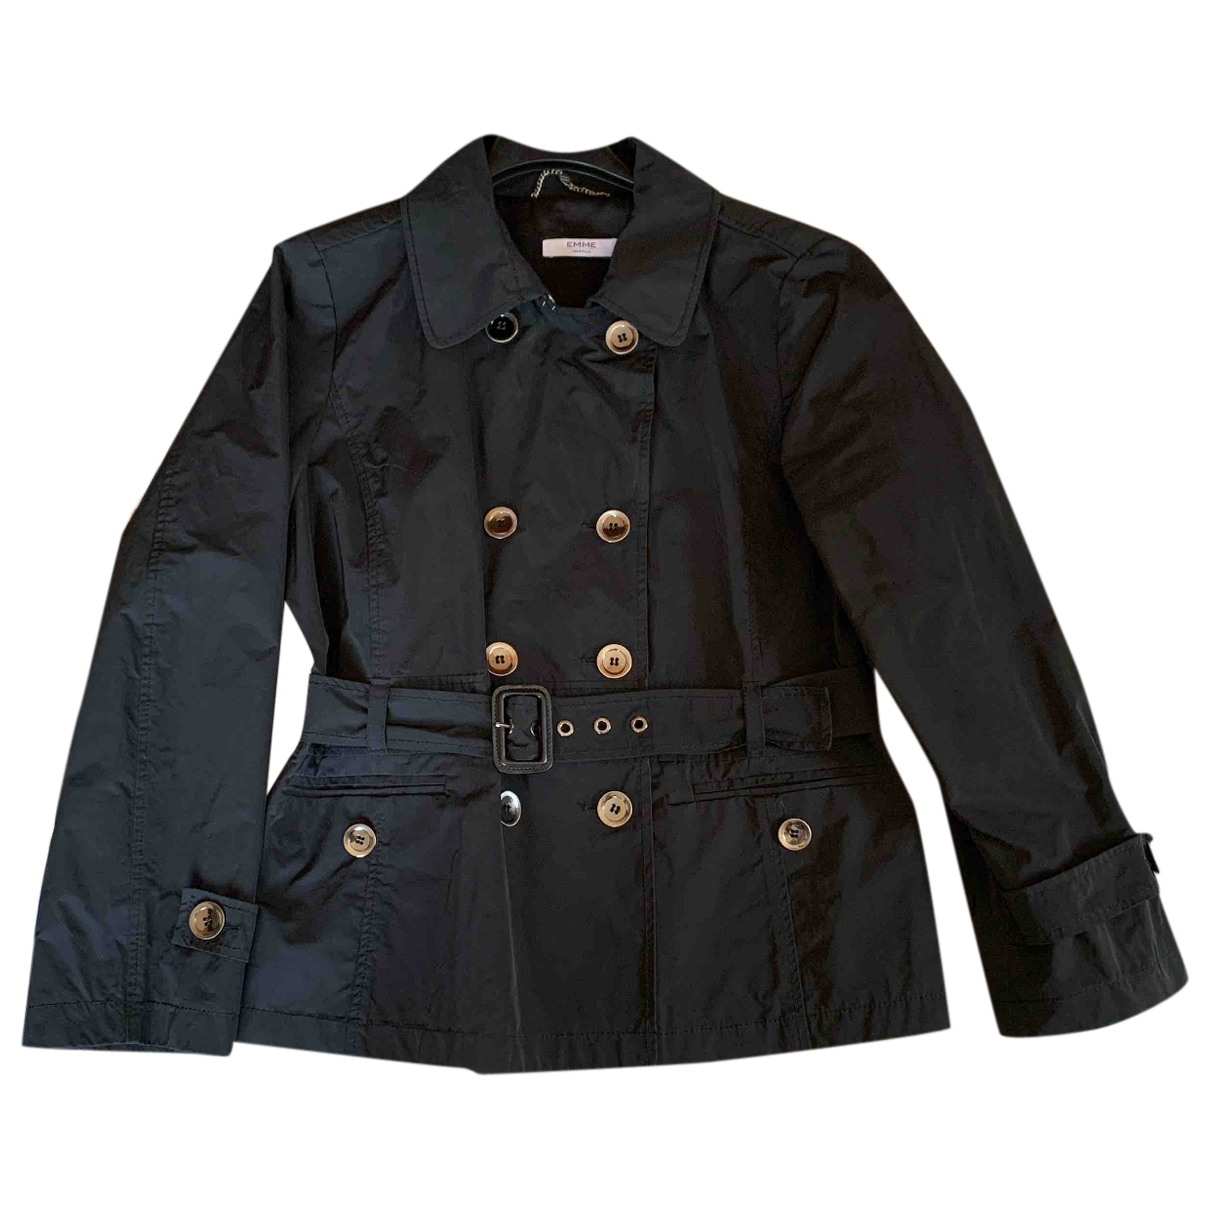 Marella \N Black jacket for Women 44 FR